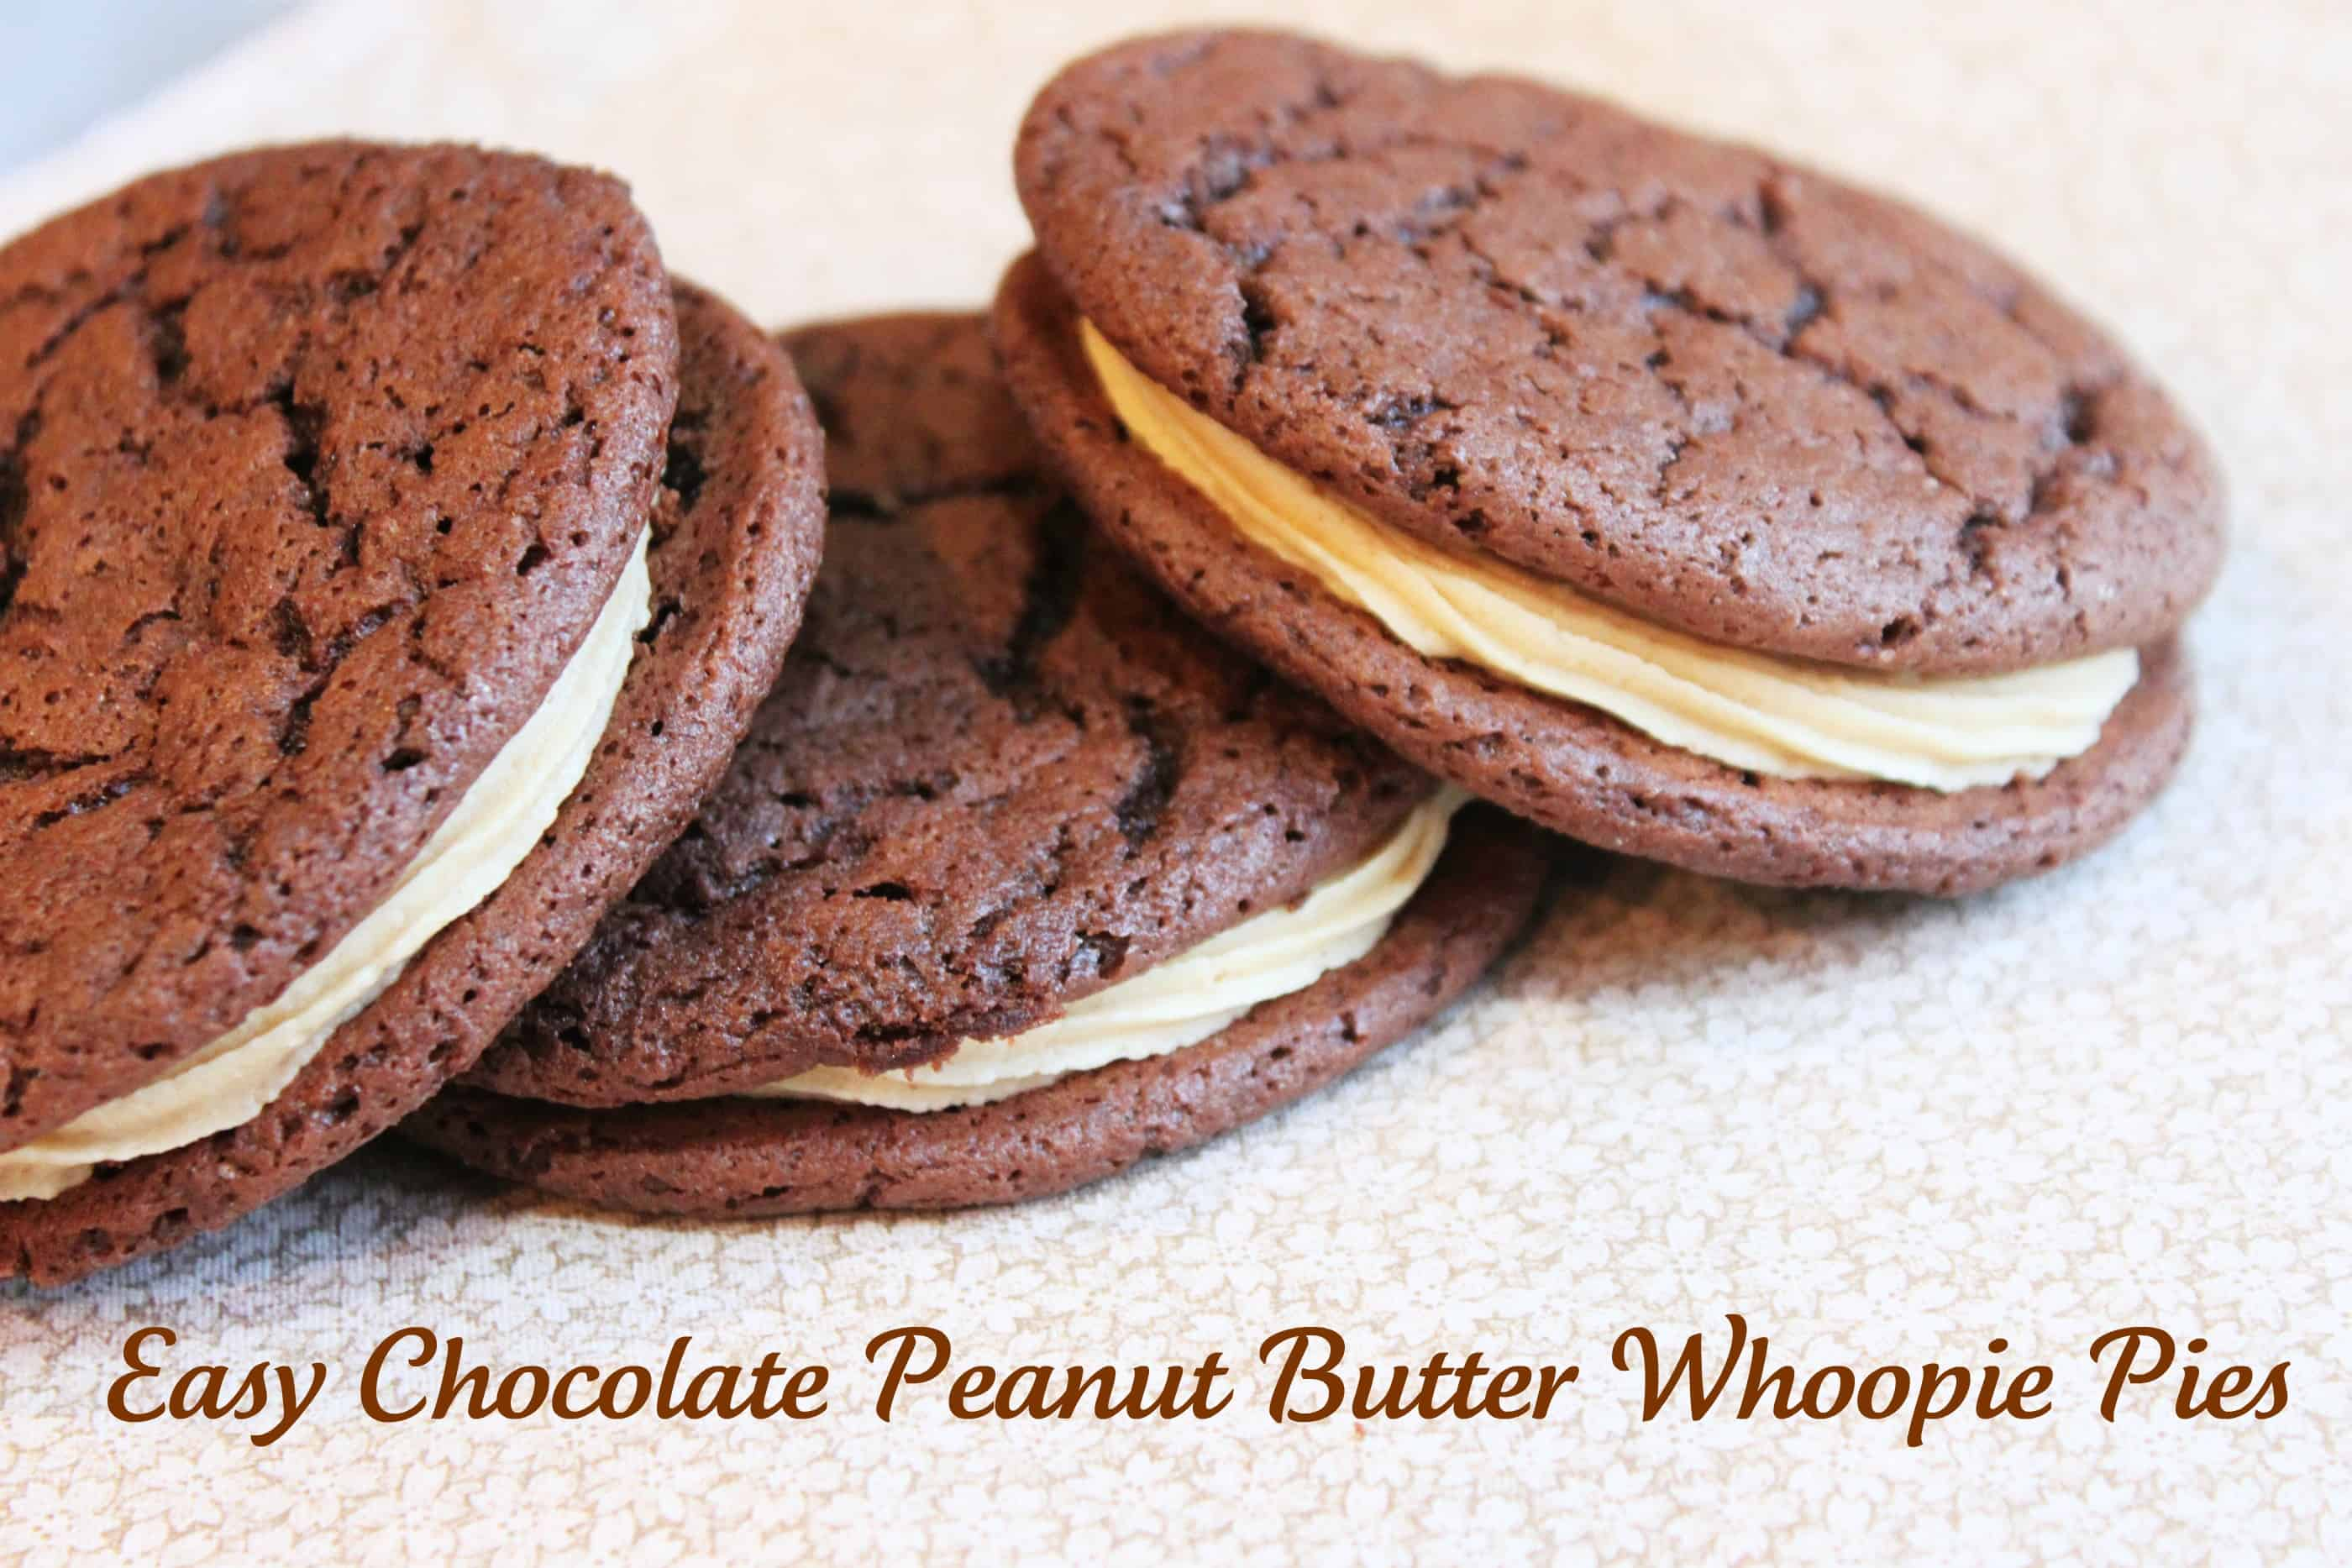 chocolate whoopie pies with whoopie pie recipes chocolate whoopie pies ...